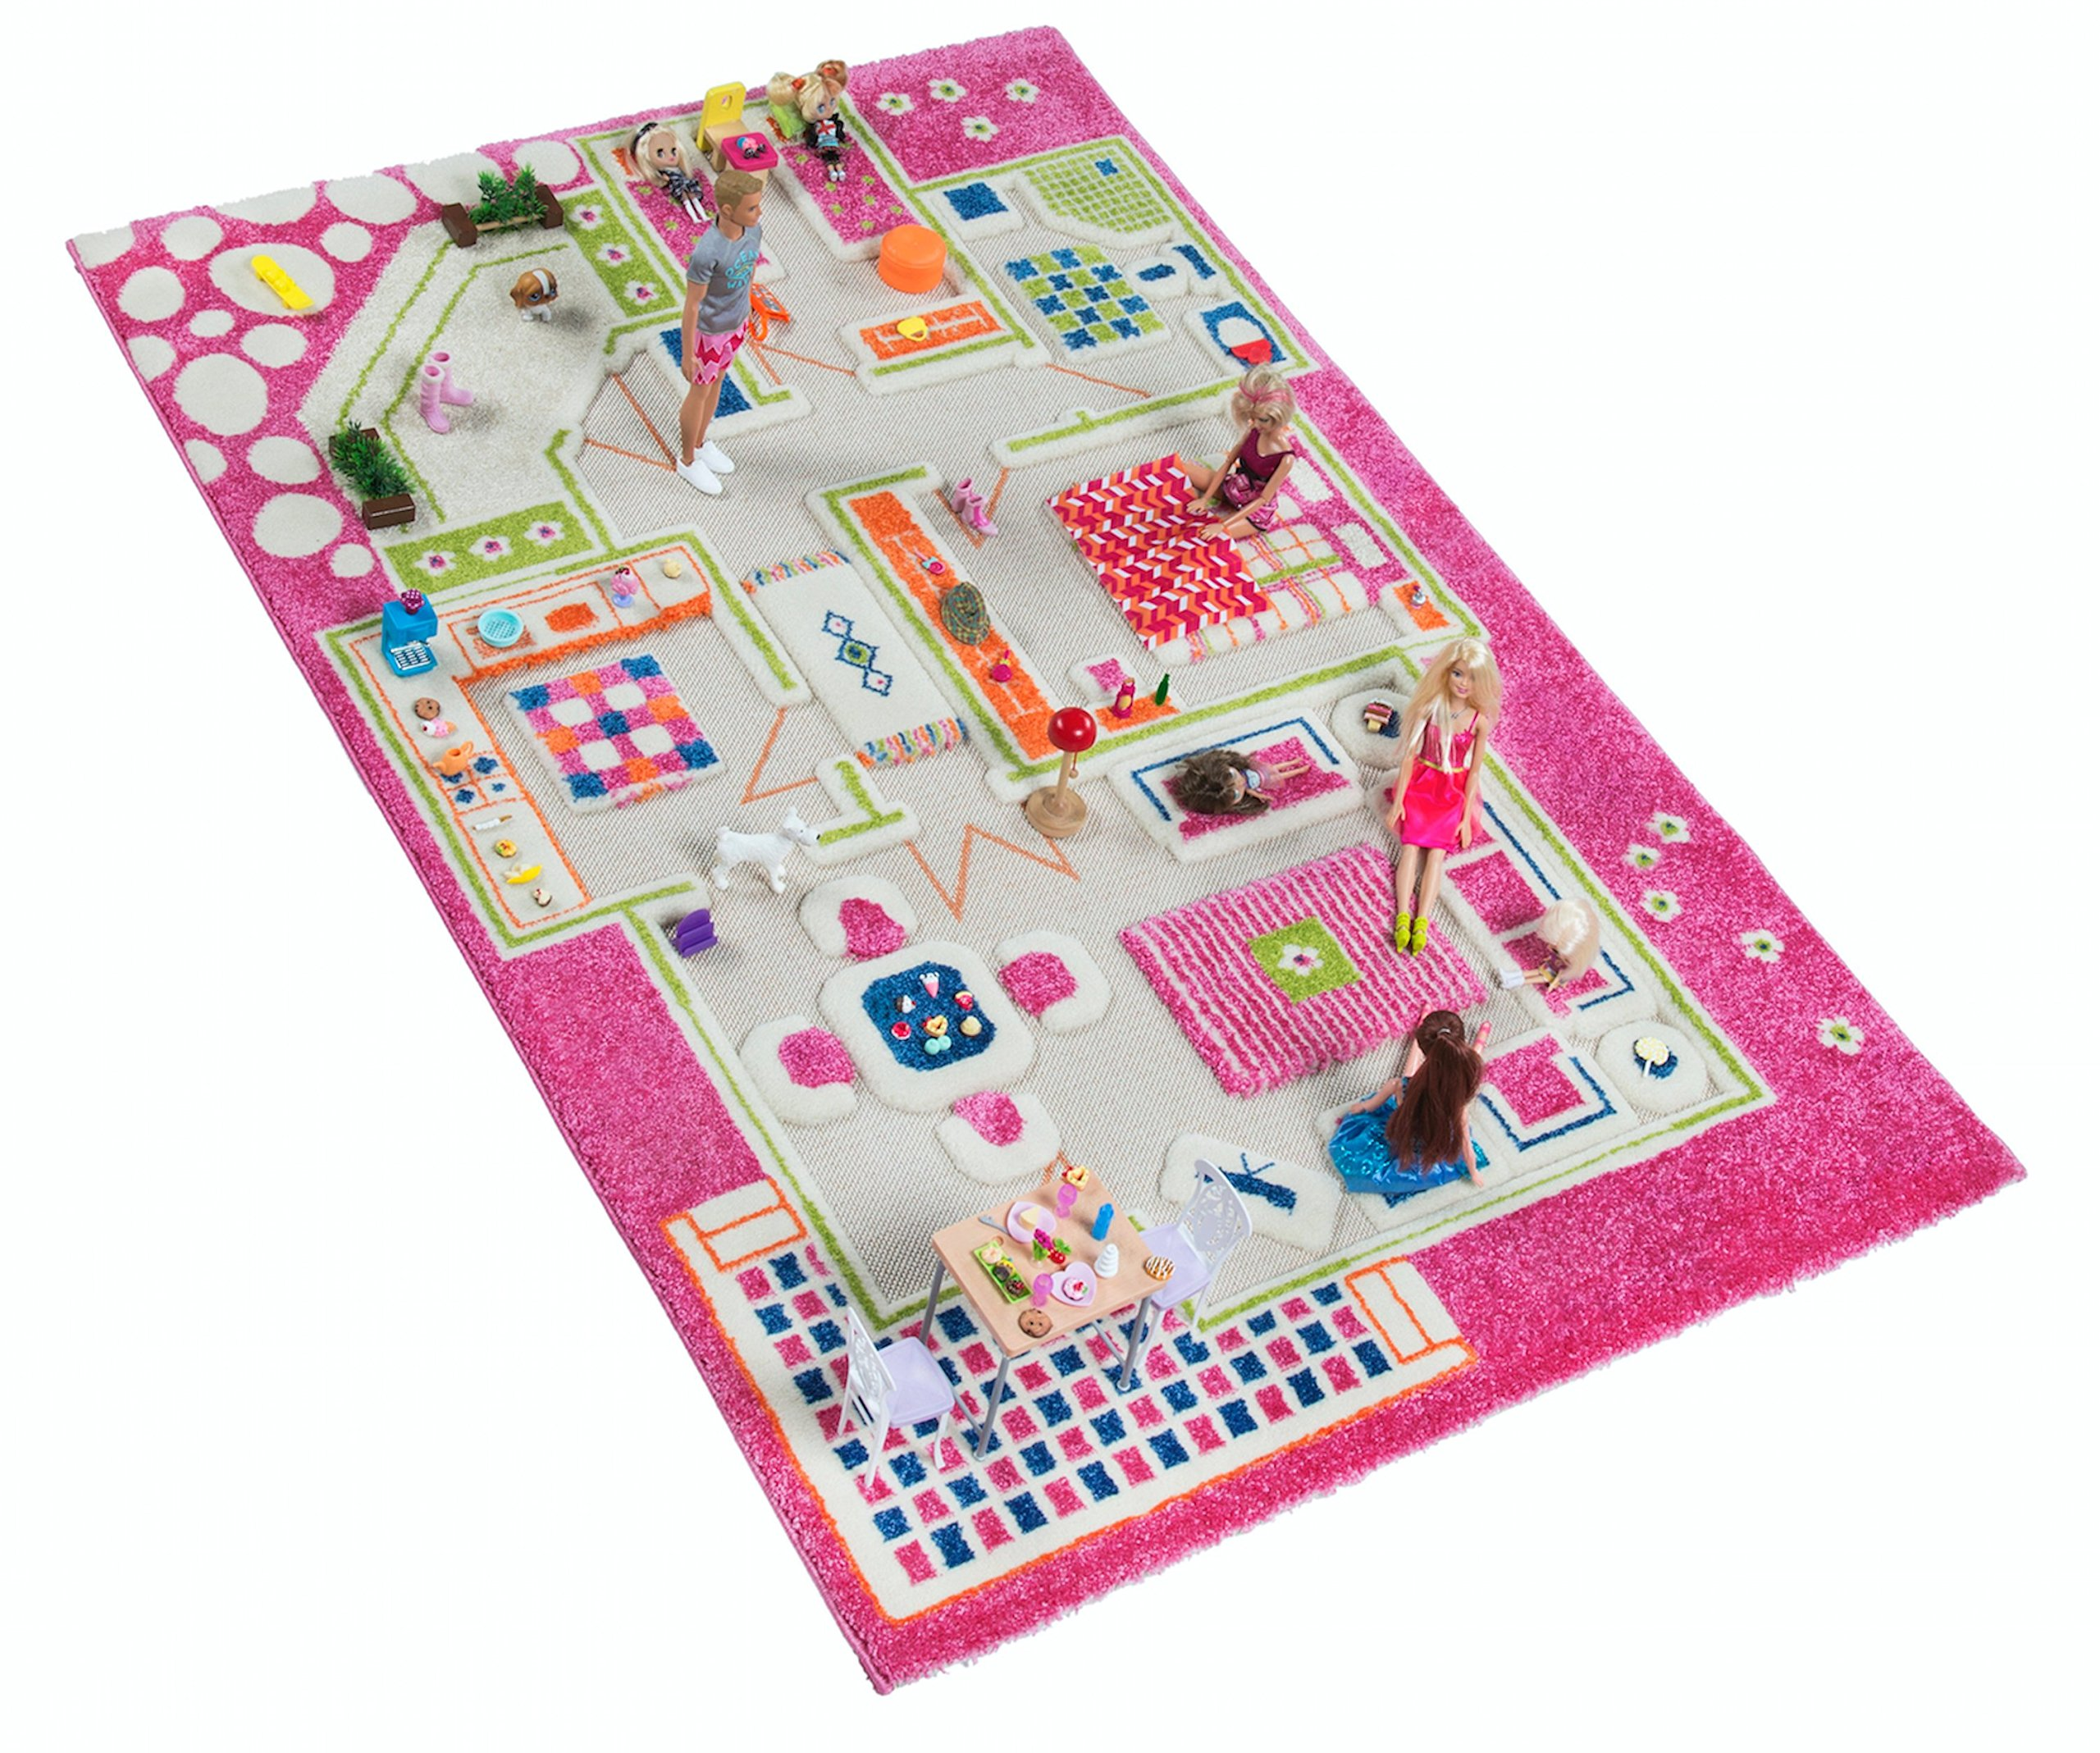 IVI Playhouse 3D Play Rugs, Medium, Pink